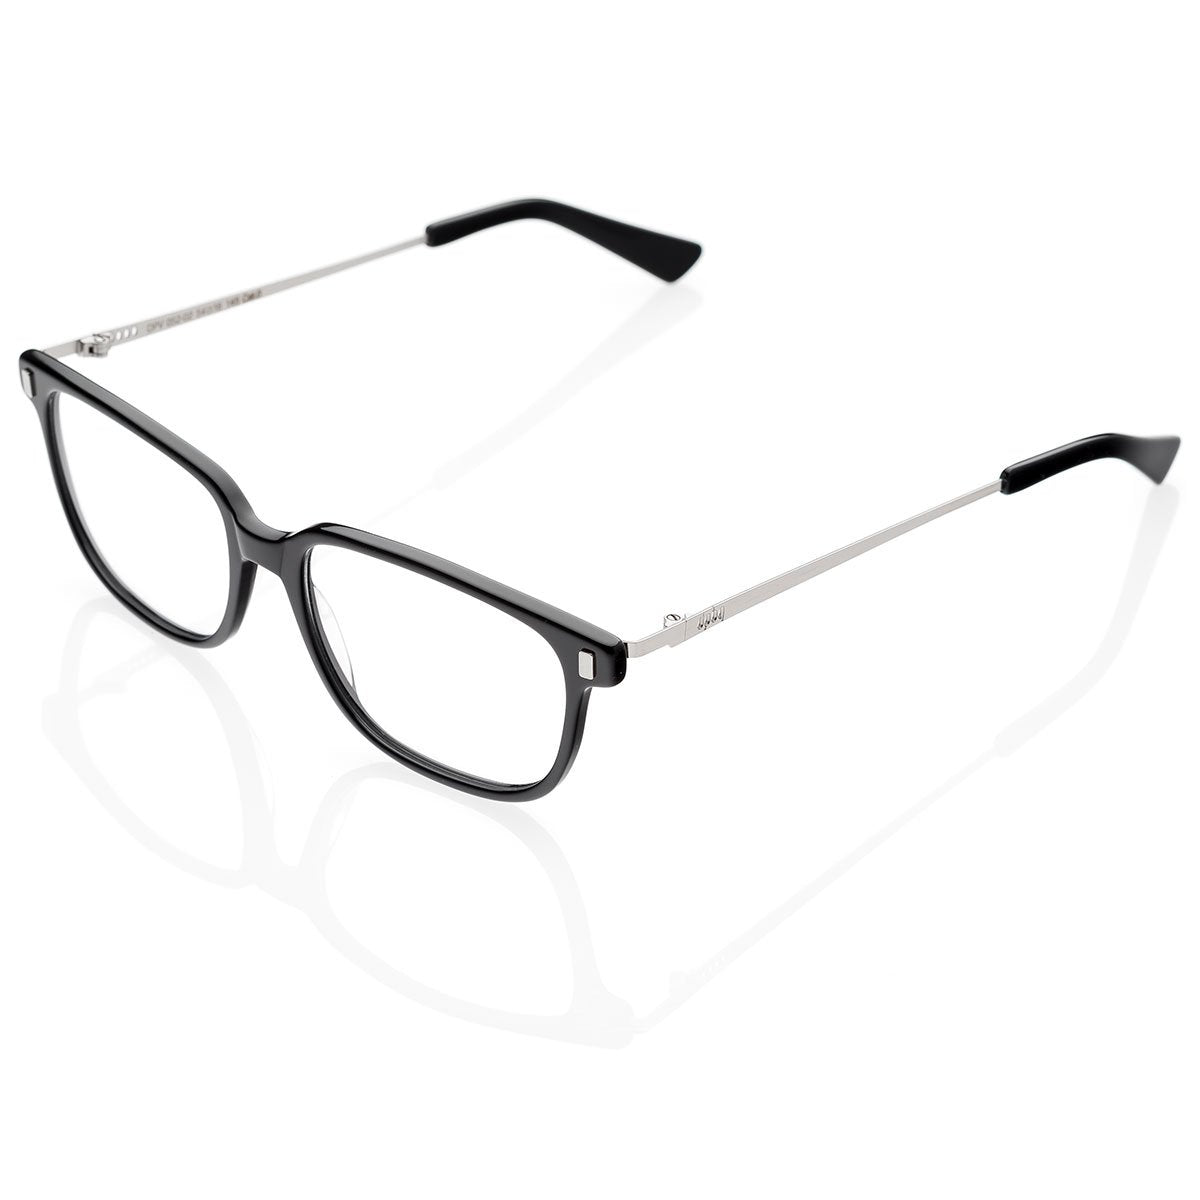 Dp69 DP69 EYEGLASSES:DPV052-02 54mm